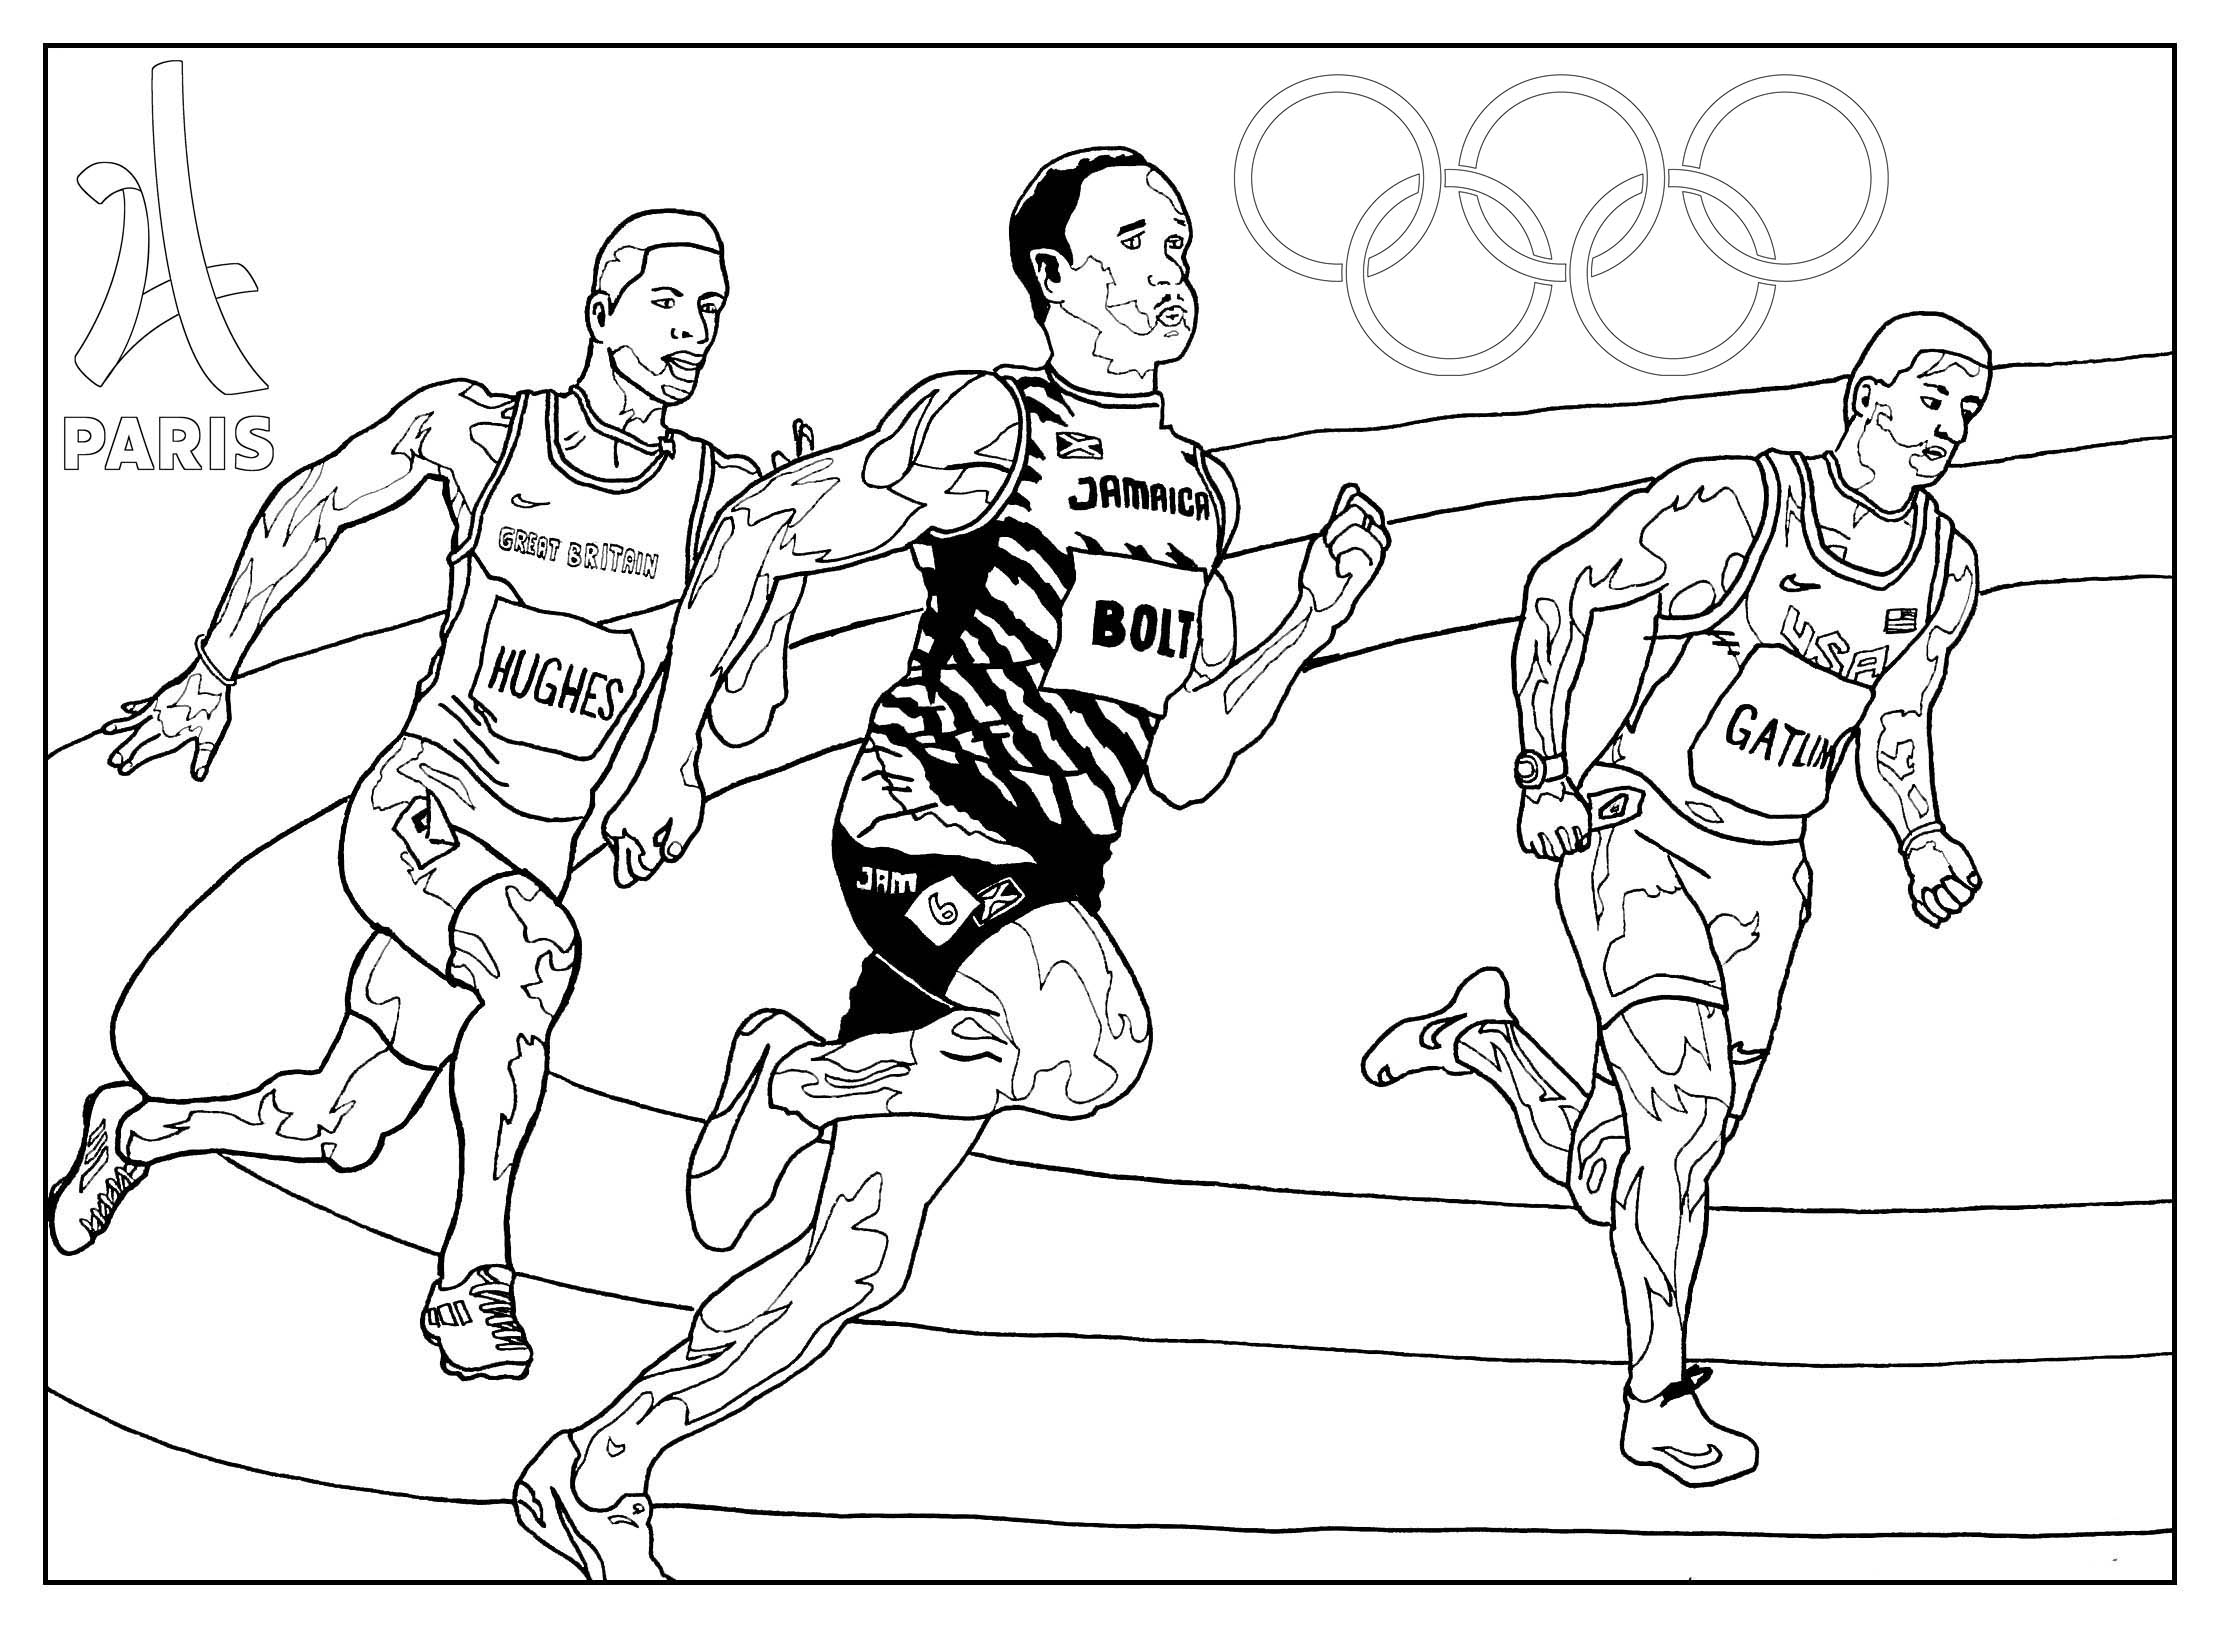 Coloring page for the 2024 Paris Olympic games : Athletics